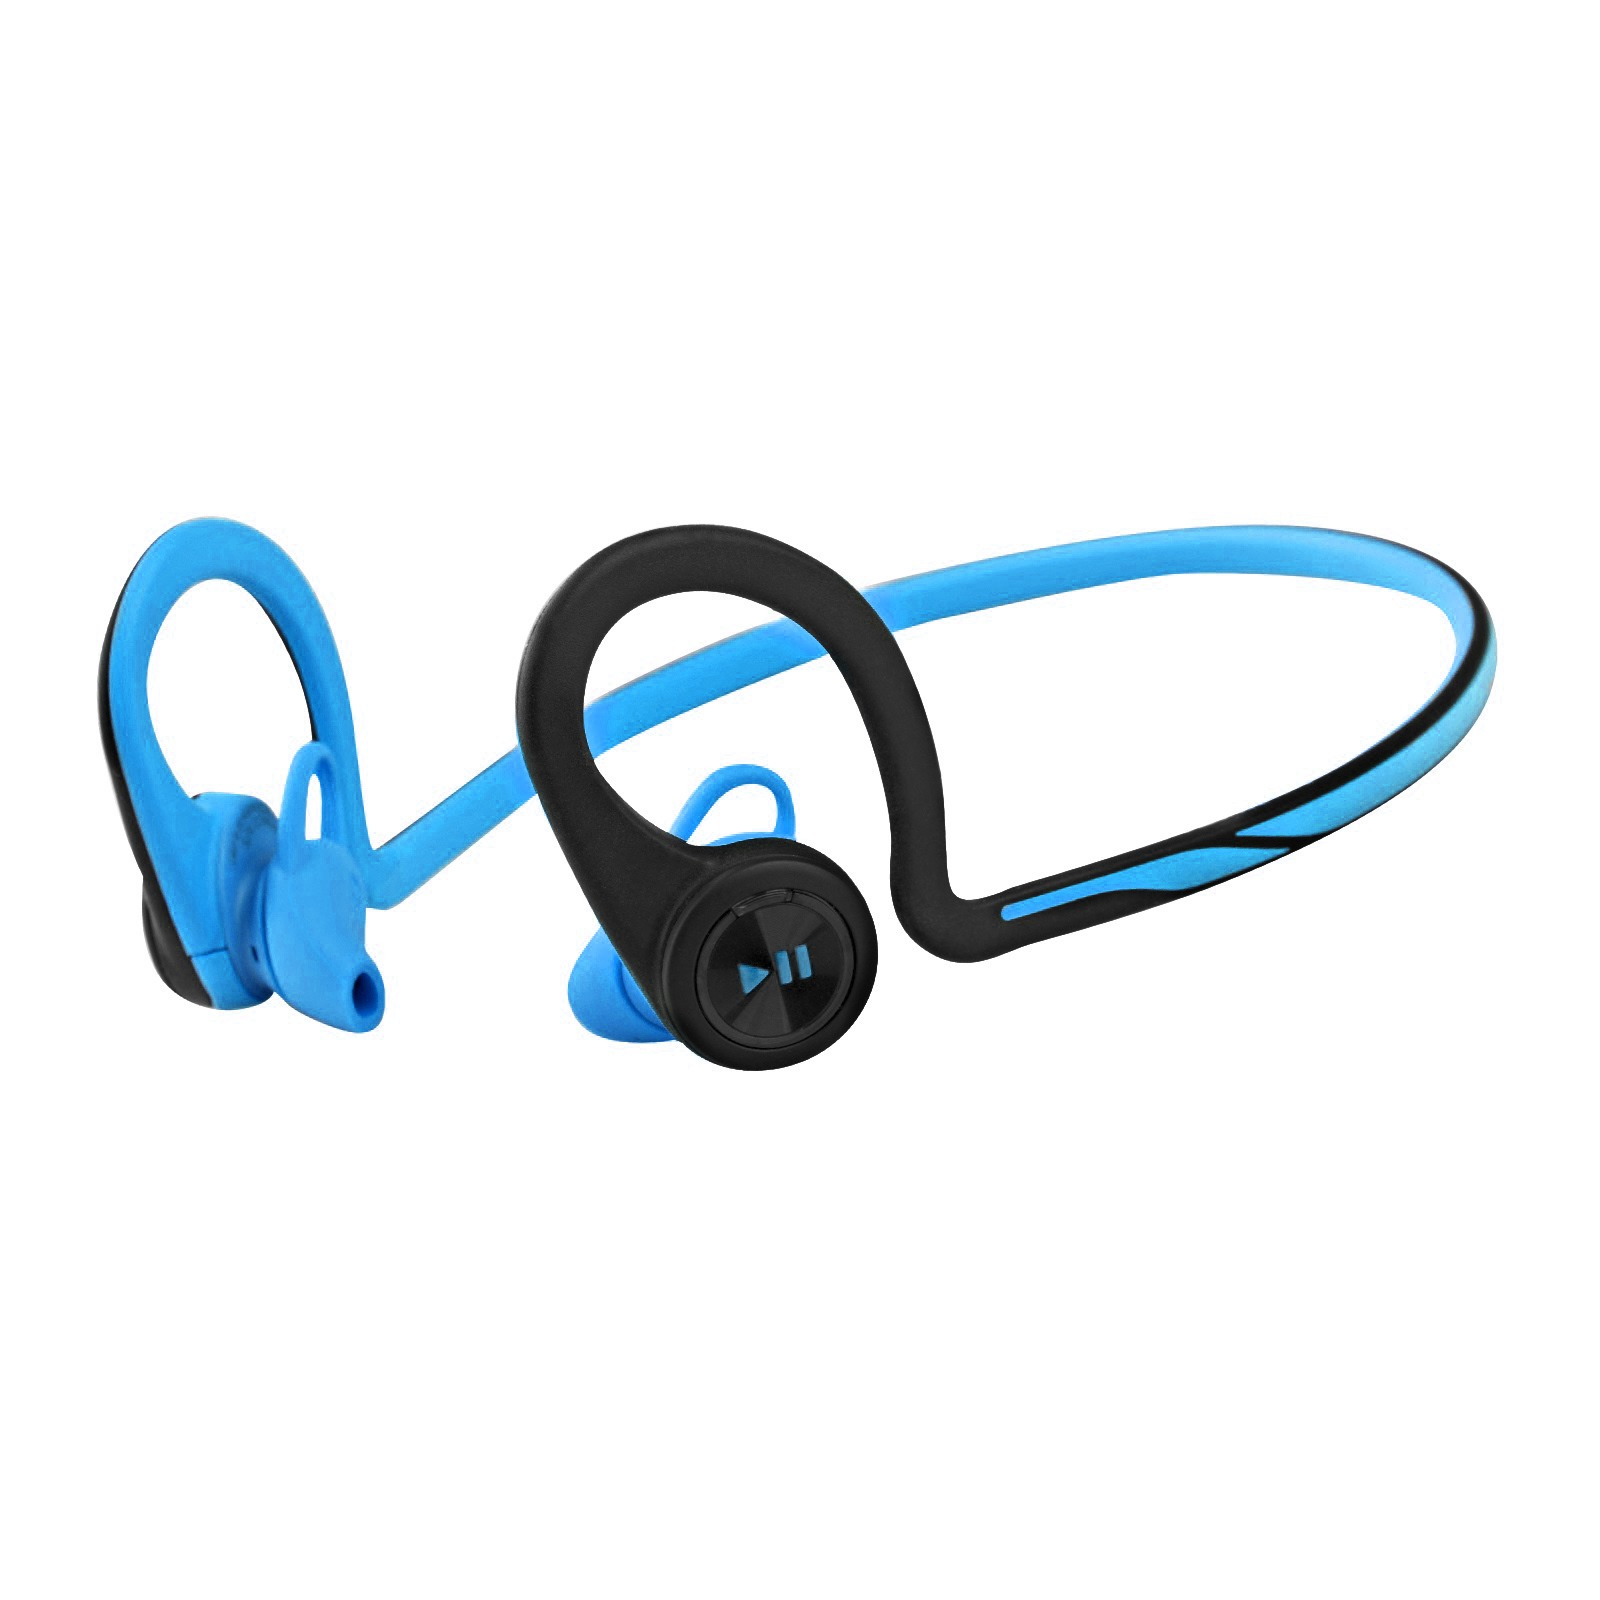 Headphones wireless bluetooth waterproof - plantronics bluetooth headphones wireless